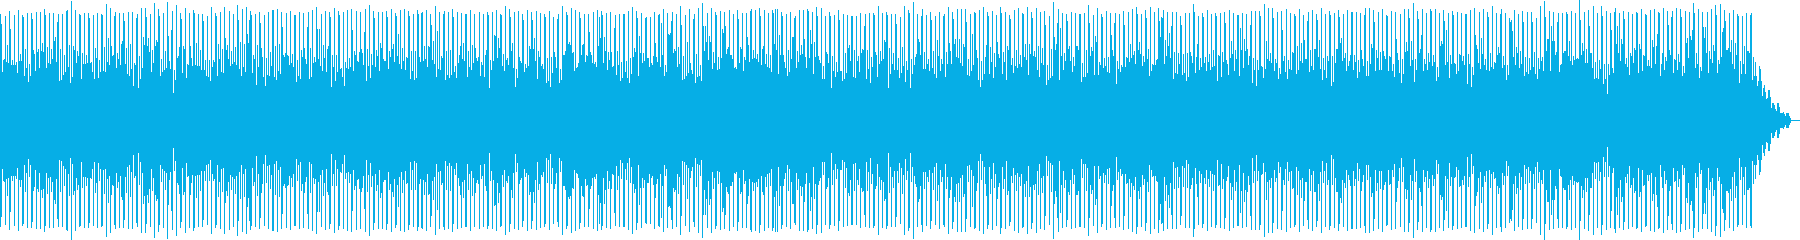 Light techno pops's reproduced waveform